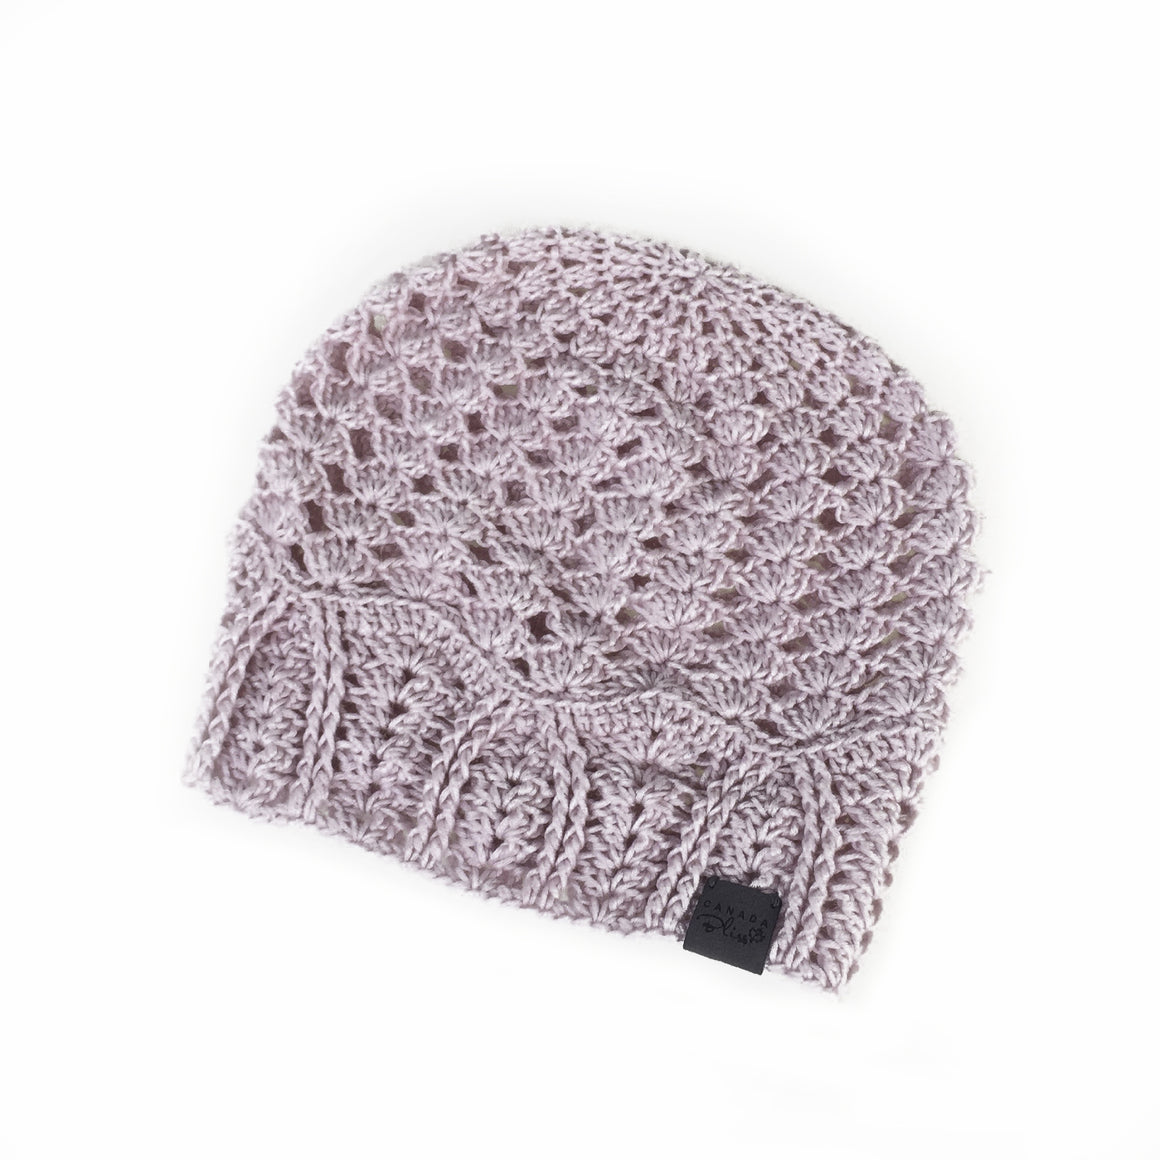 Pink Cherish Bamboo Lightweight Hat Crochet Knit Hat Canada Bliss Hot Accessories Celebrity Fashion Style Beanie Spring Summer Fall Winter Fashion